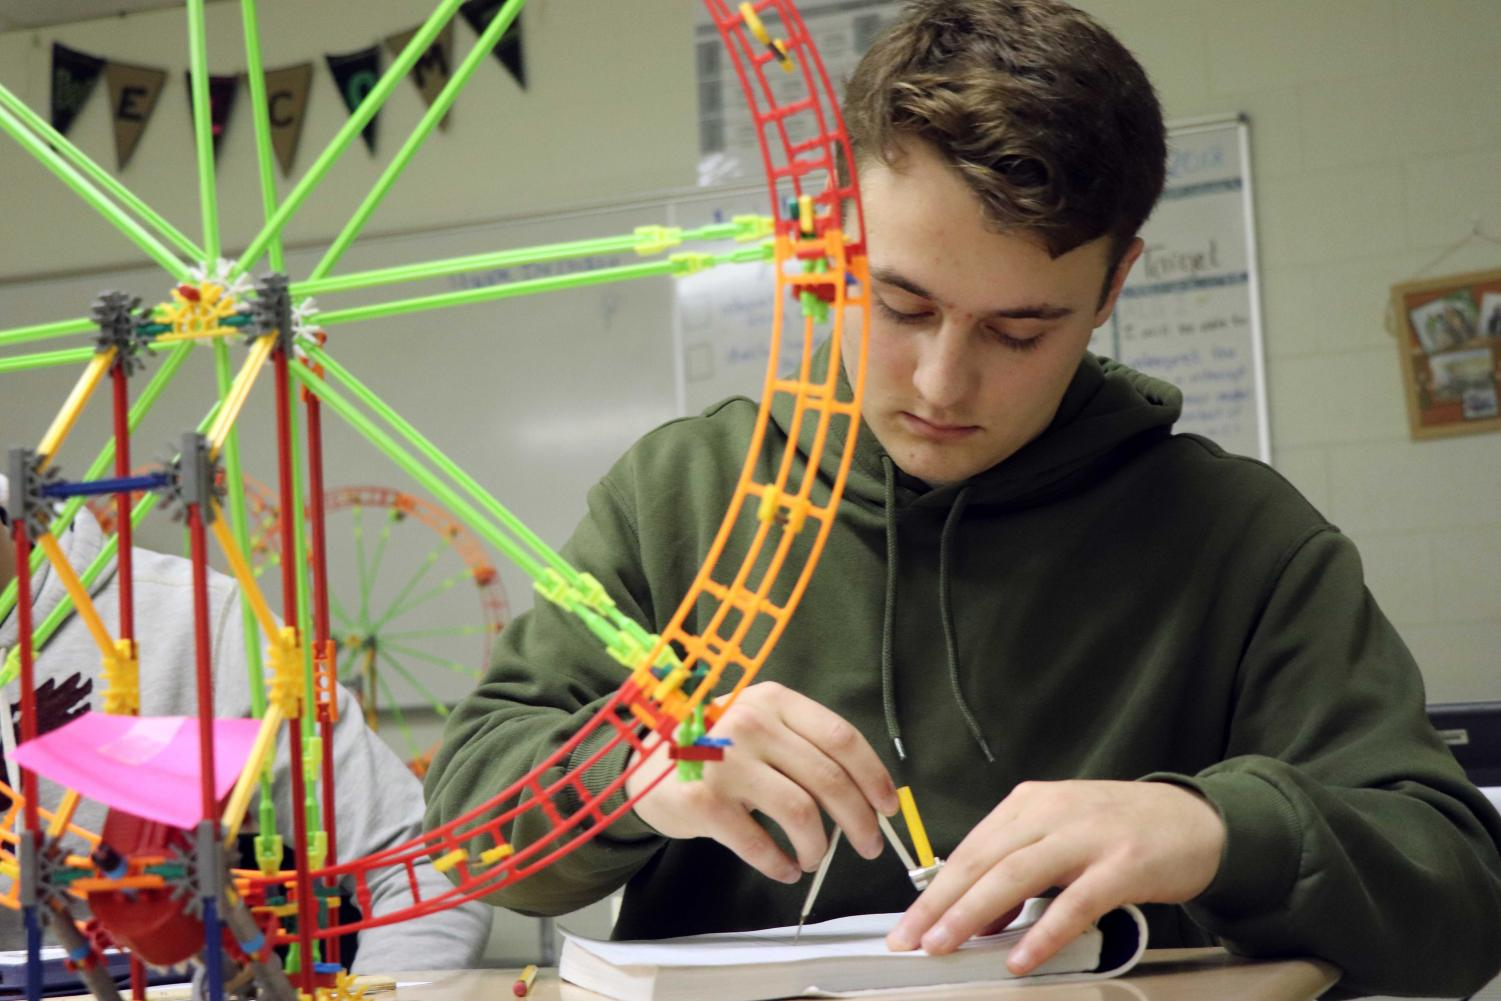 While measuring his ferris wheel, senior Thomas Conlon draws the wheel for his scale drawing.  Students in Algebra 2 (Year 2) built their own ferris wheel and will graph sinusoidal equations for the project.